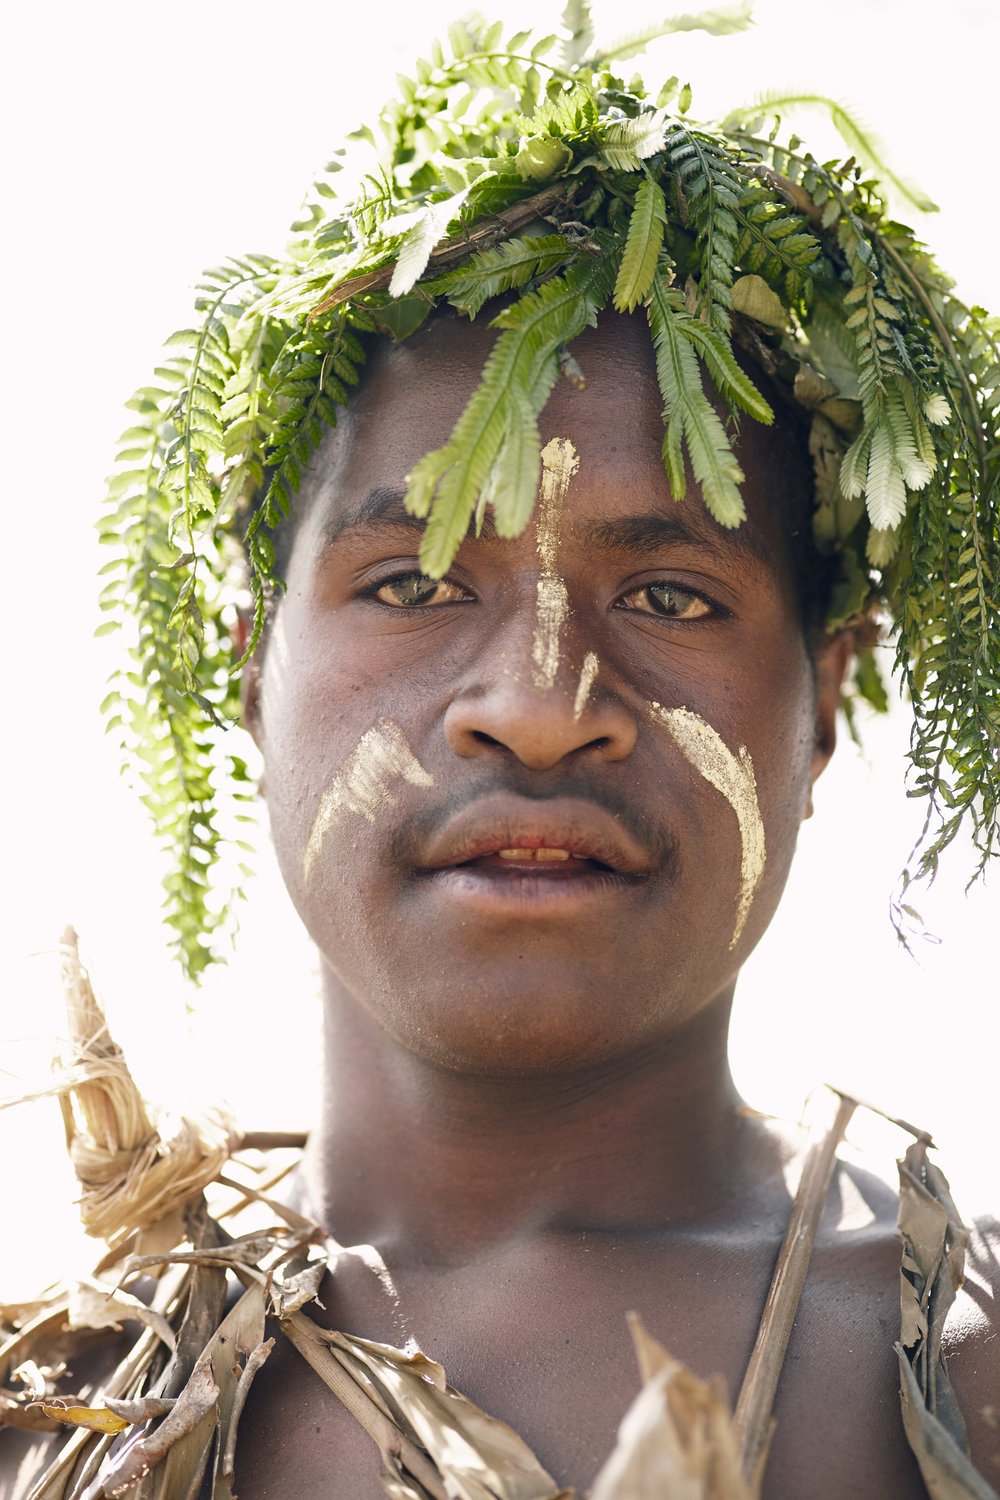 YONKI TRIBE WARRIOR, PAPUA NEW GUINEA